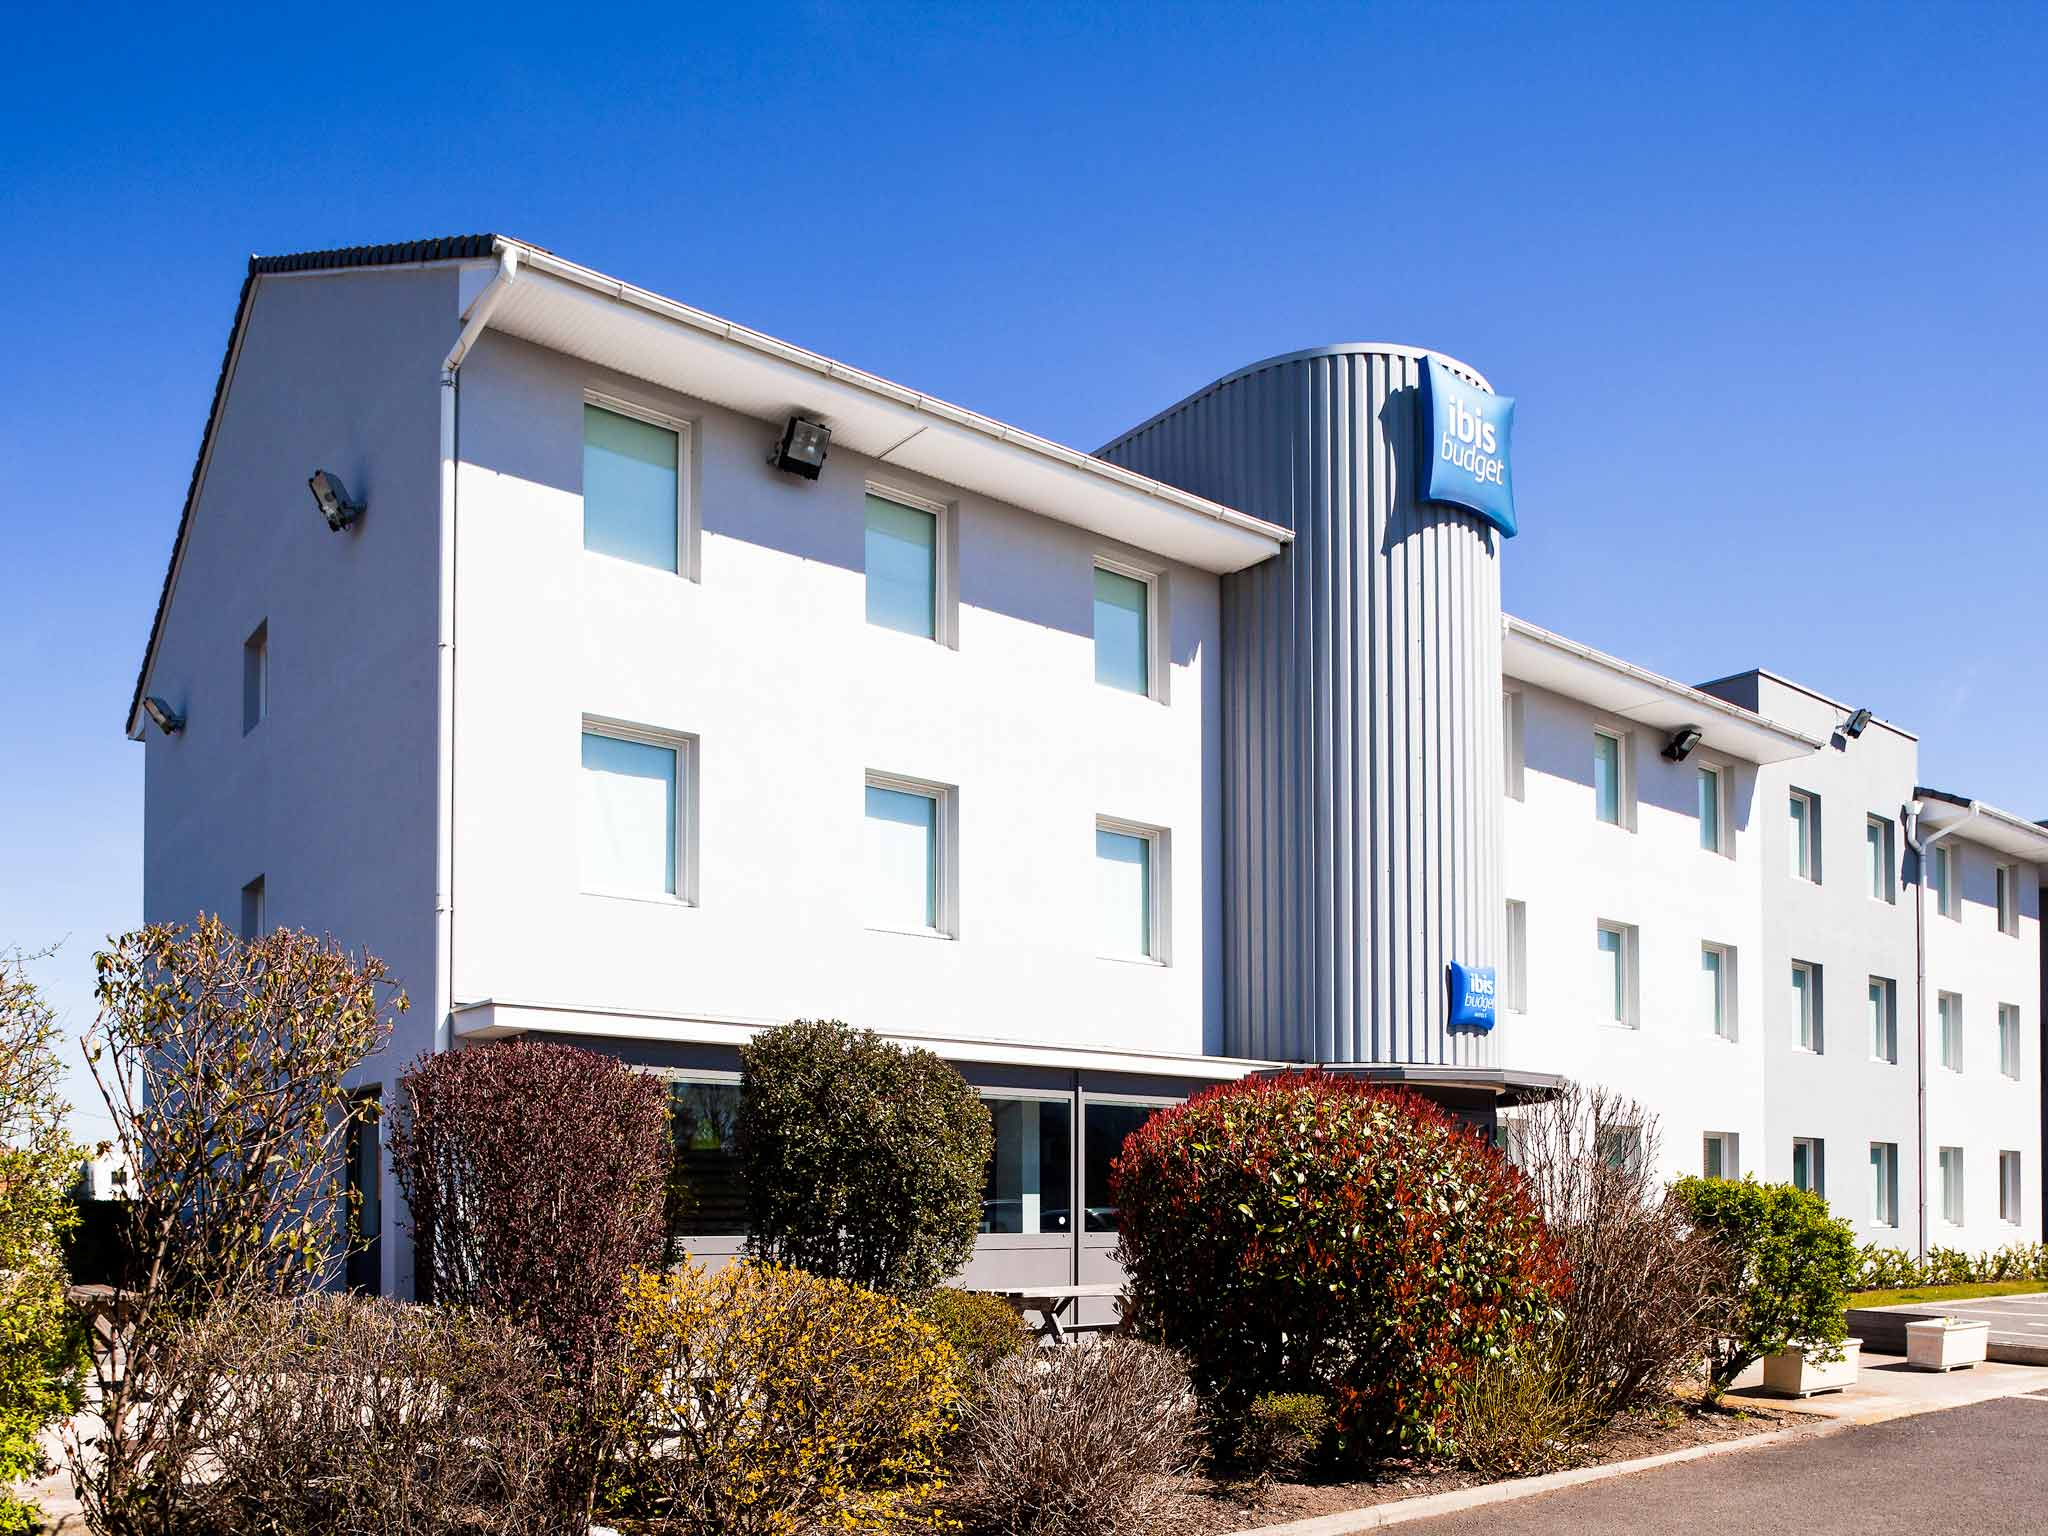 Hotel in RIOM ibis budget Clermont Ferrand Nord Riom